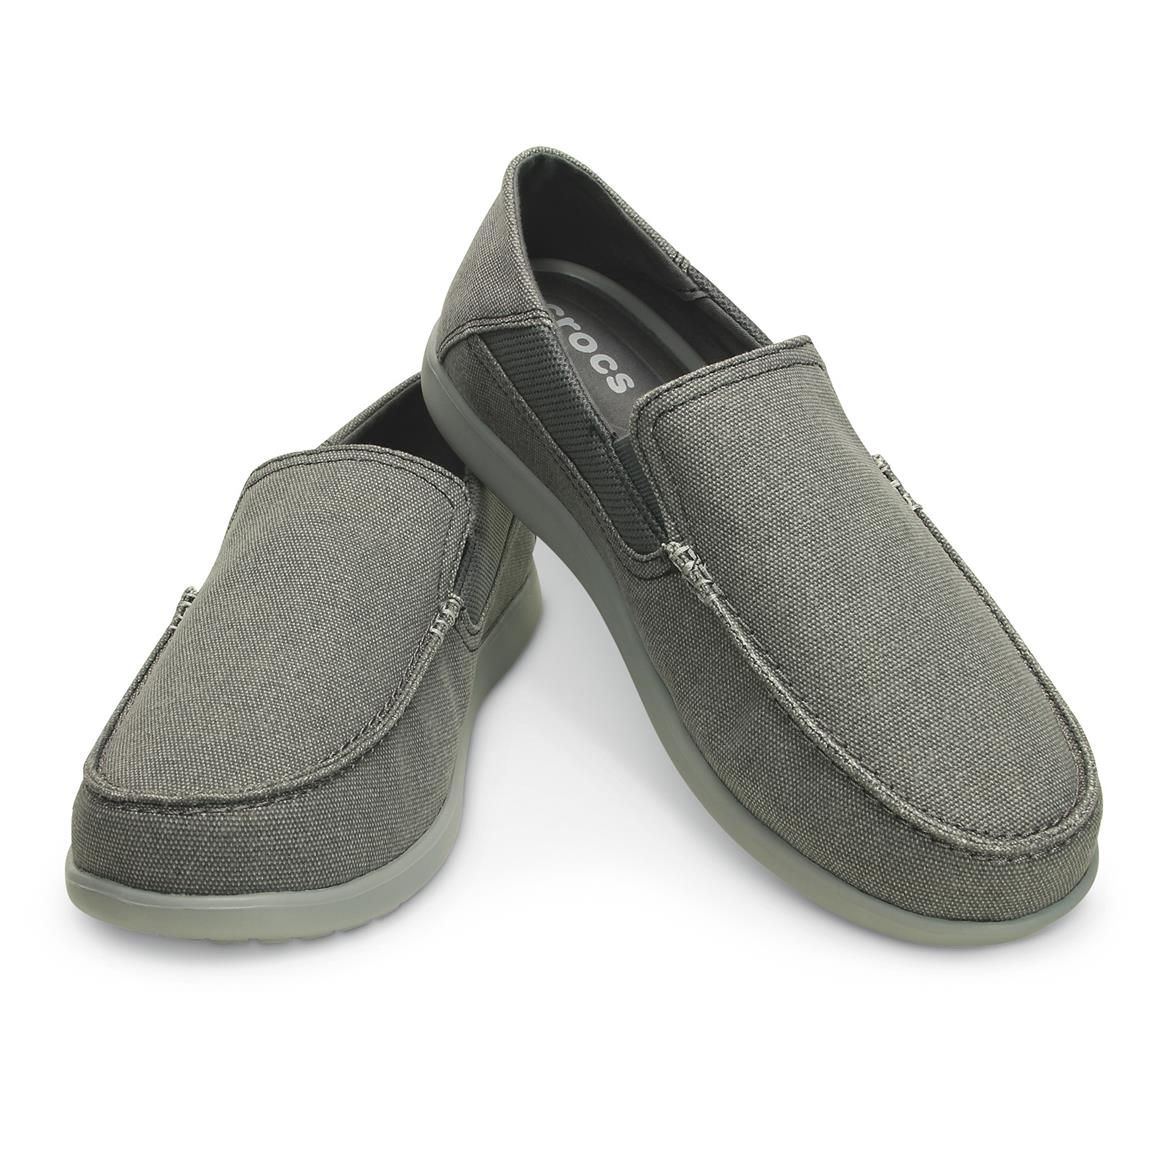 Crocs Shoes For Men